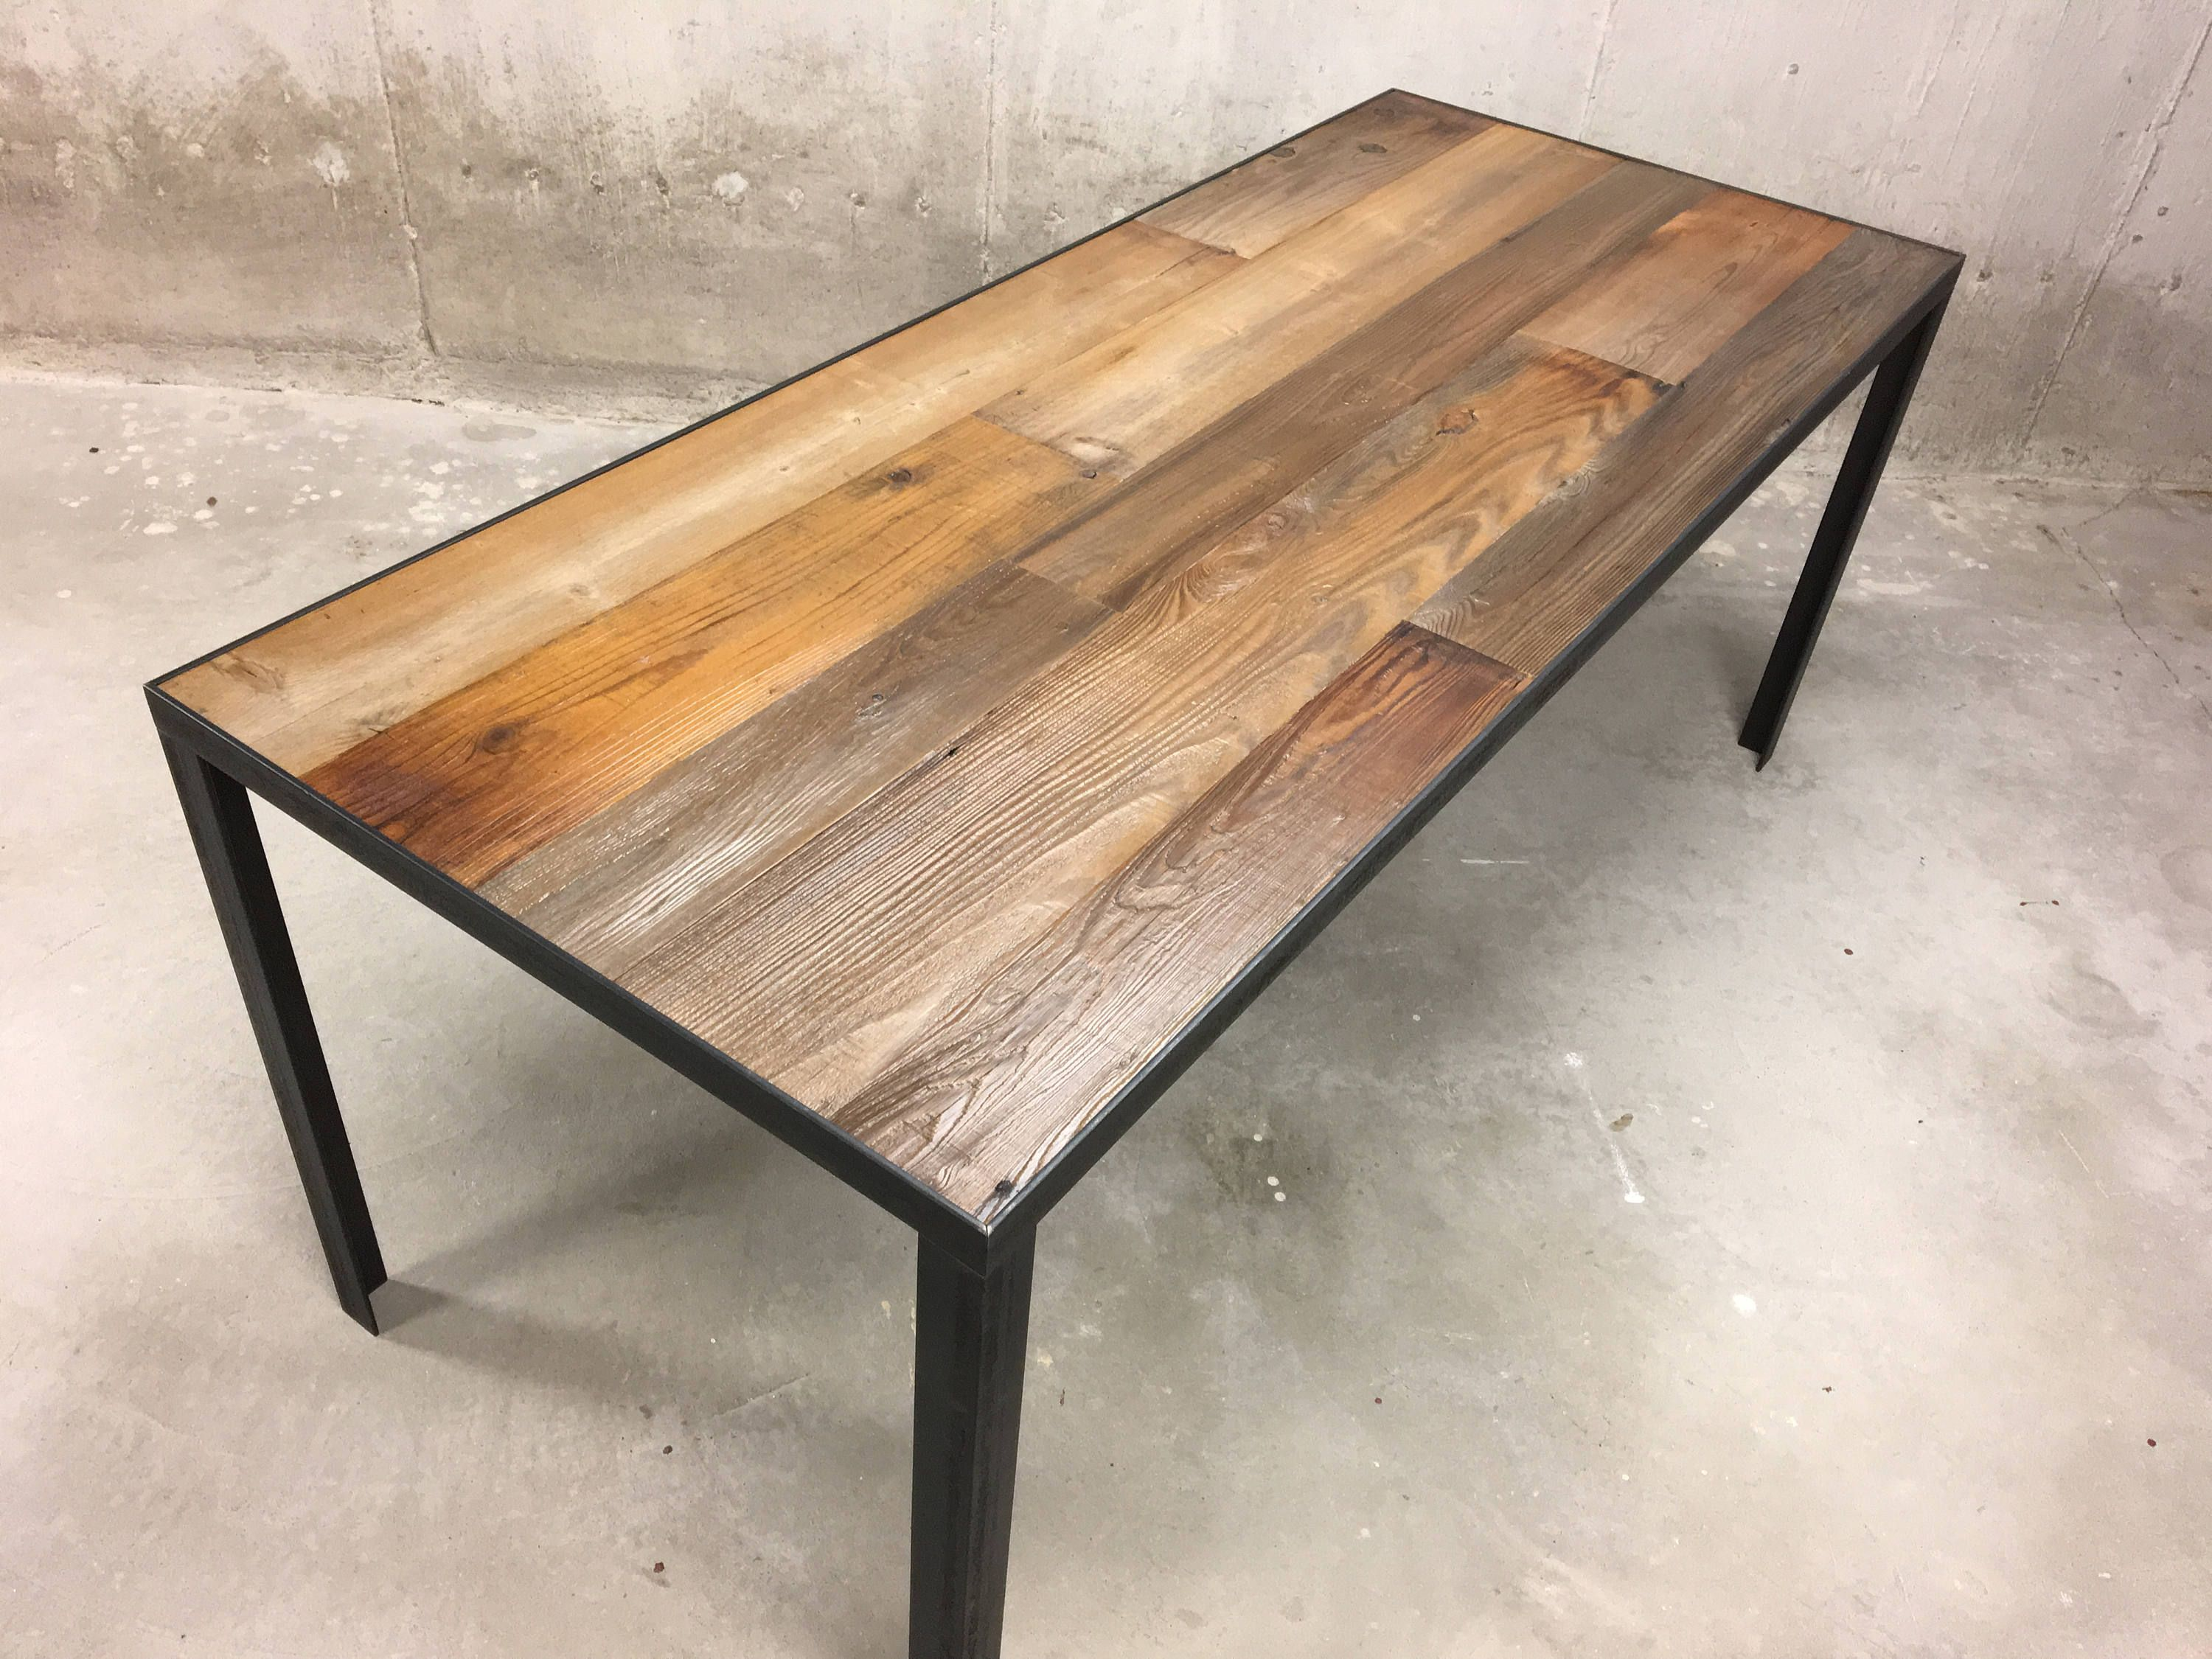 reclaimed wood furniture etsy. Reclaimed Wood Dining Table - Steel Banding Legs By SWDESIGNS74 On Etsy Furniture E